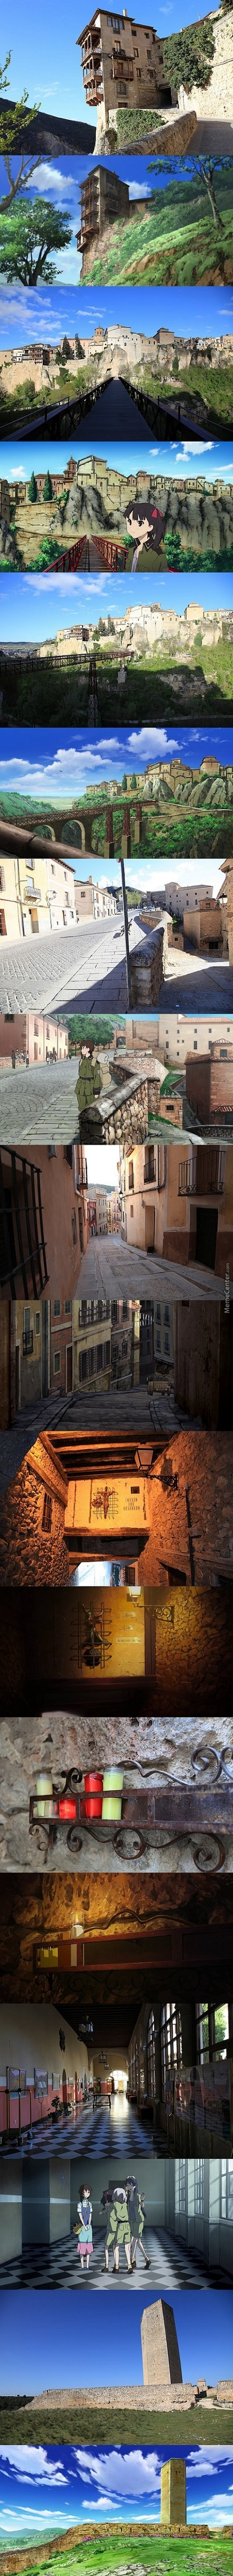 I Respect An Anime That Puts Tought Into It's Art. ( Comparison Of The Town Of Seize From Sora No Woto, And Cuenca, Spain)